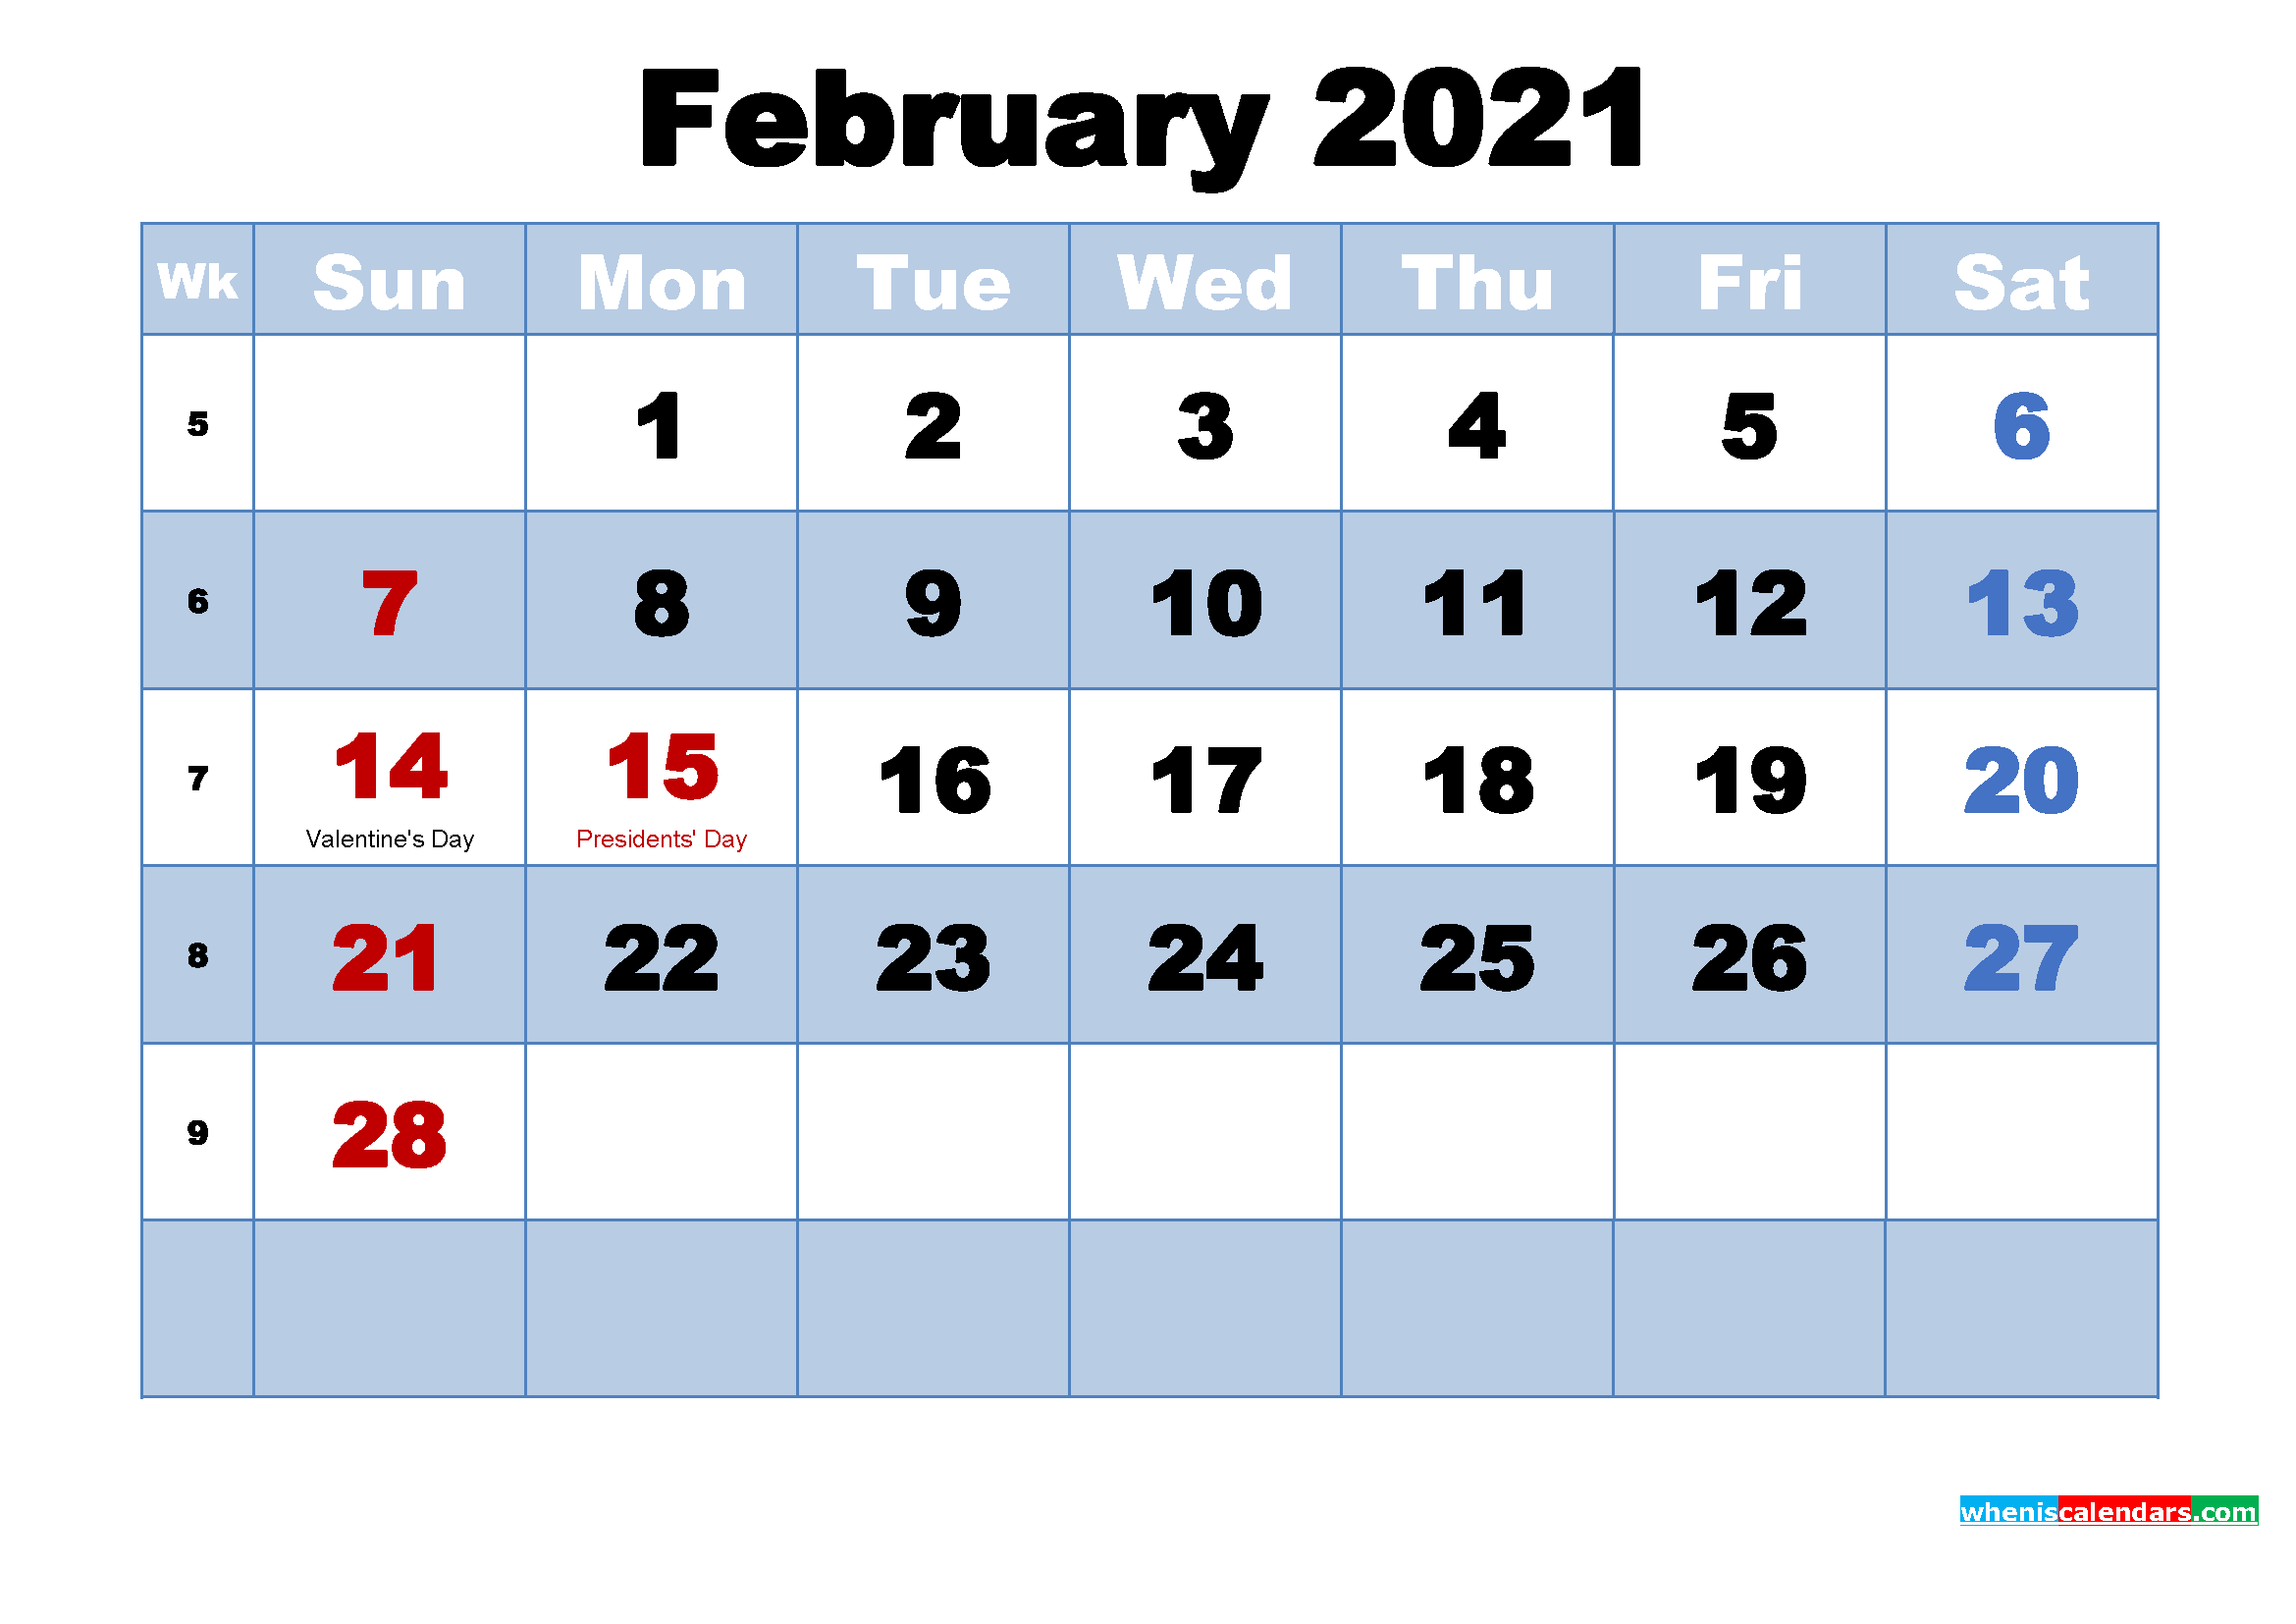 February 2021 Calendar Wallpapers   Top February 2021